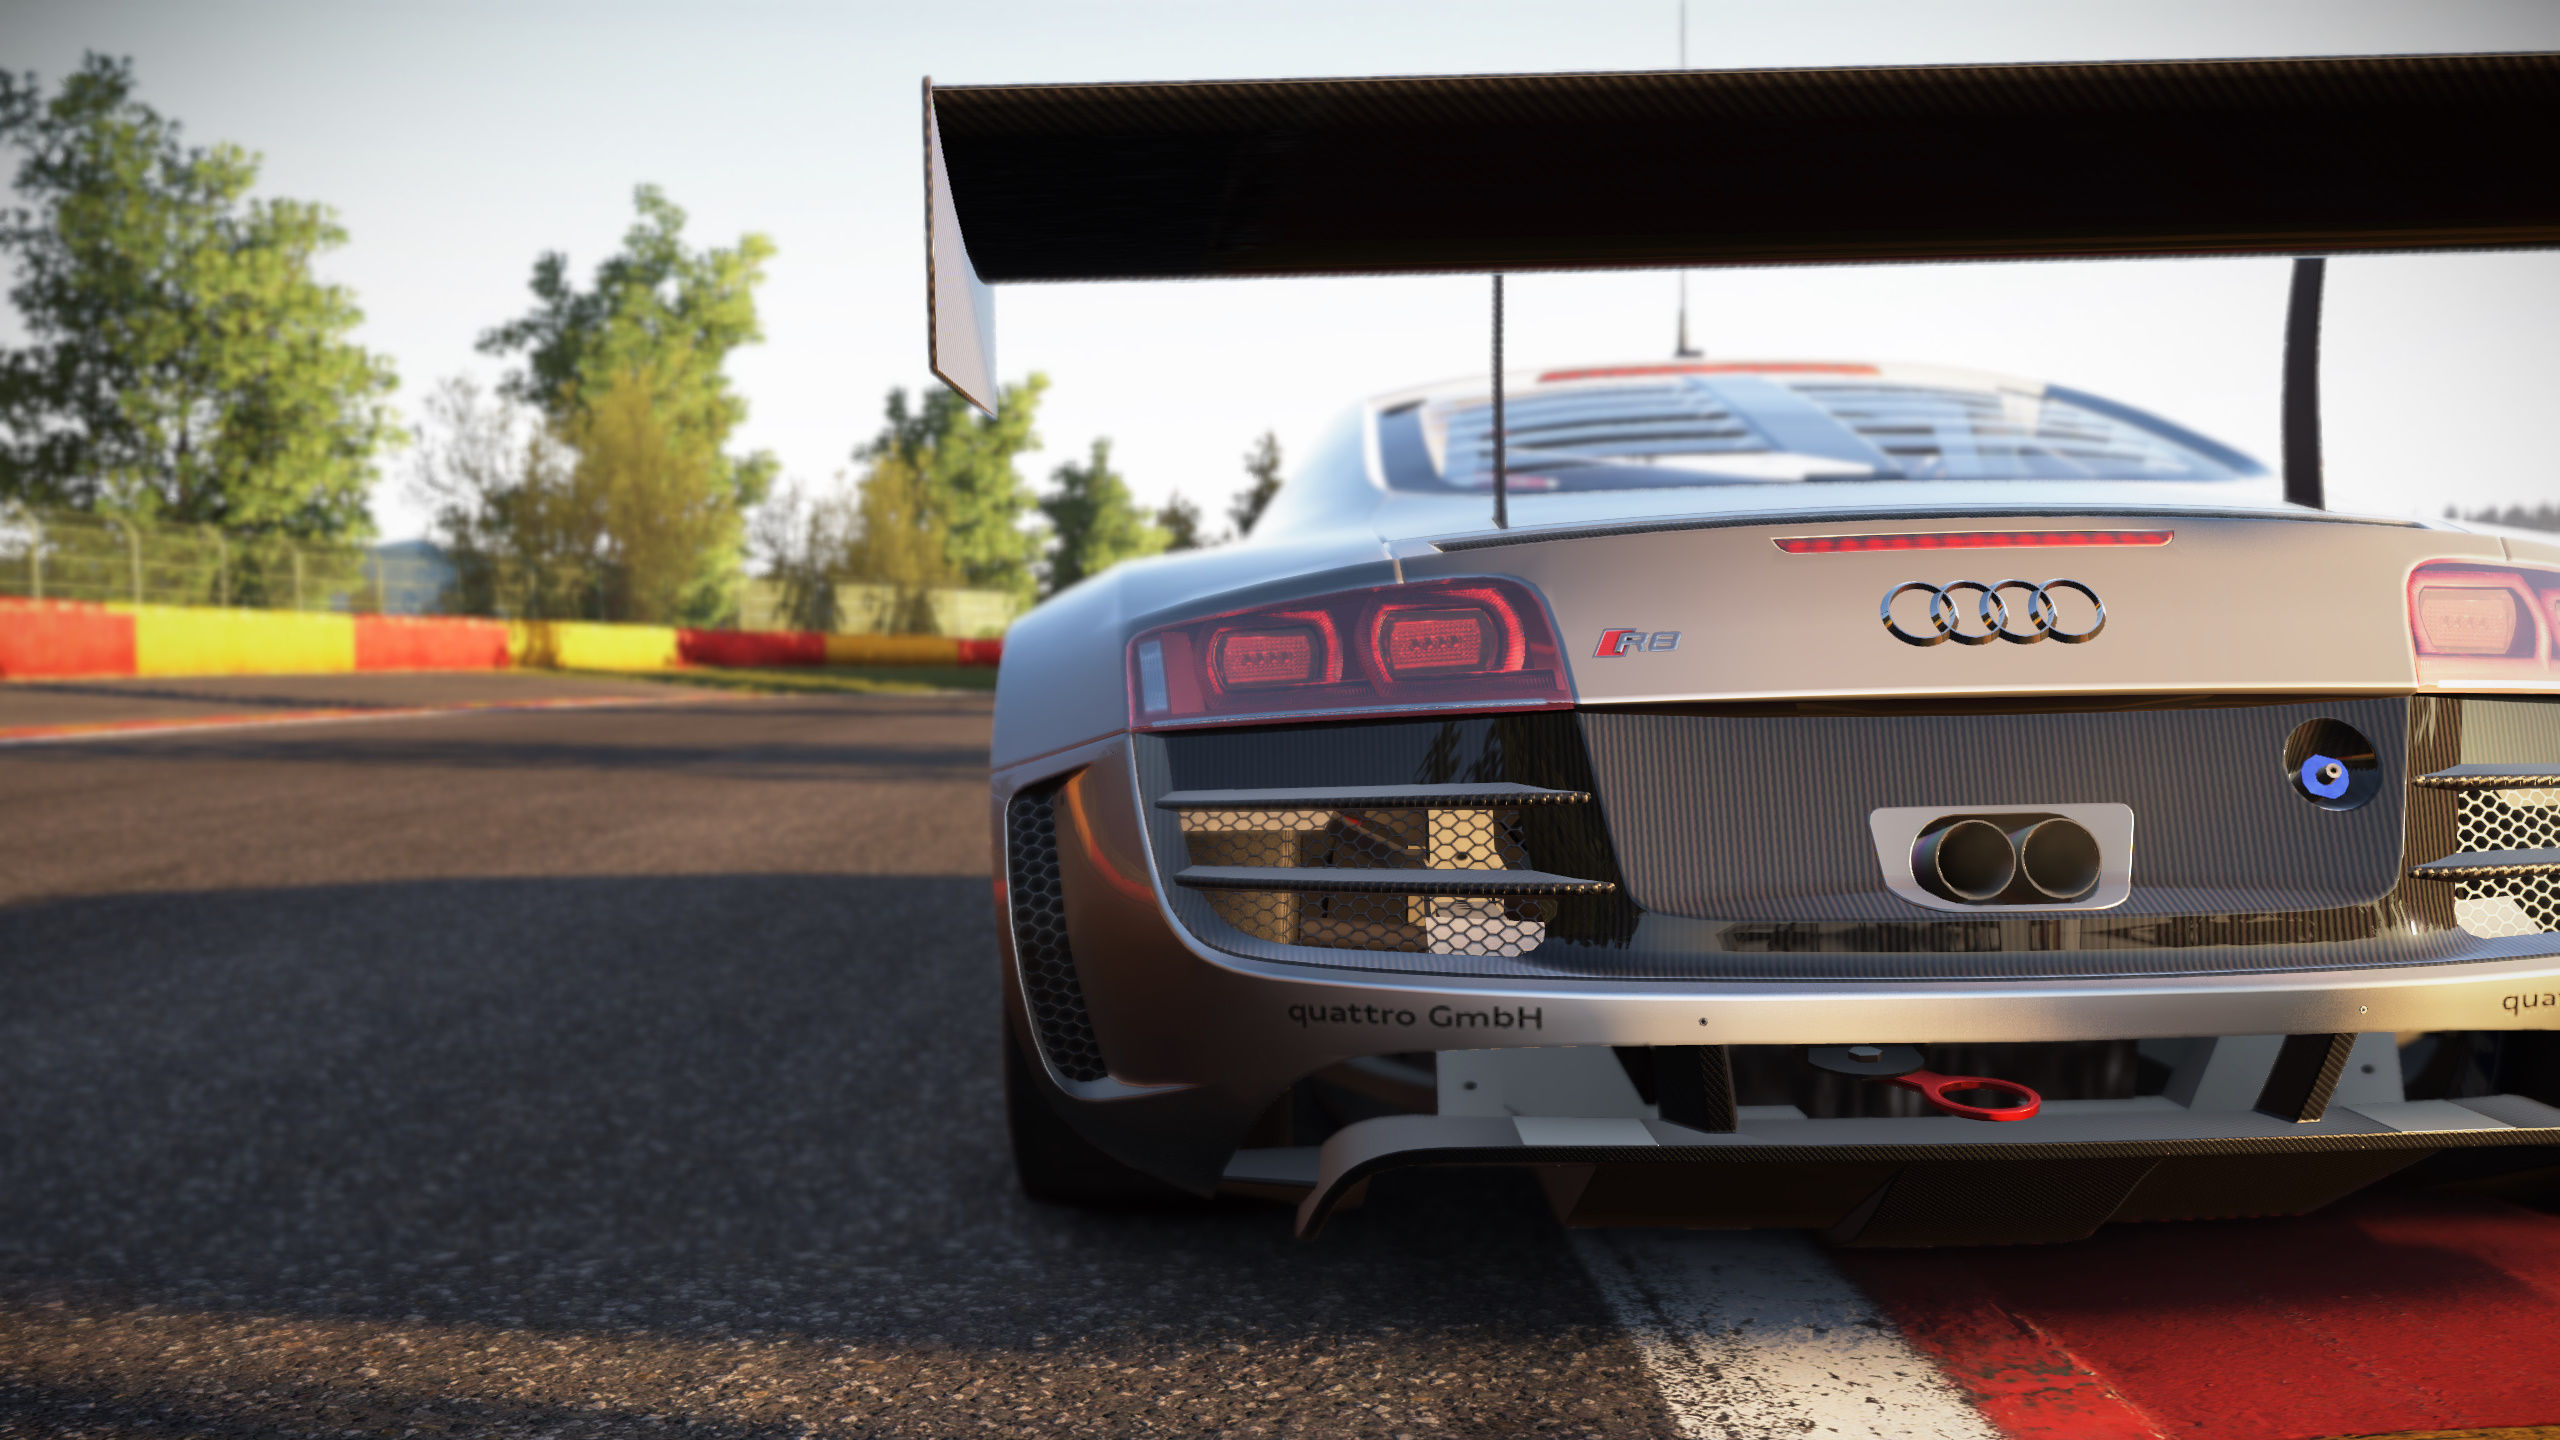 R Full HD Wallpaper And Background Image X ID - Audi car games audi r8